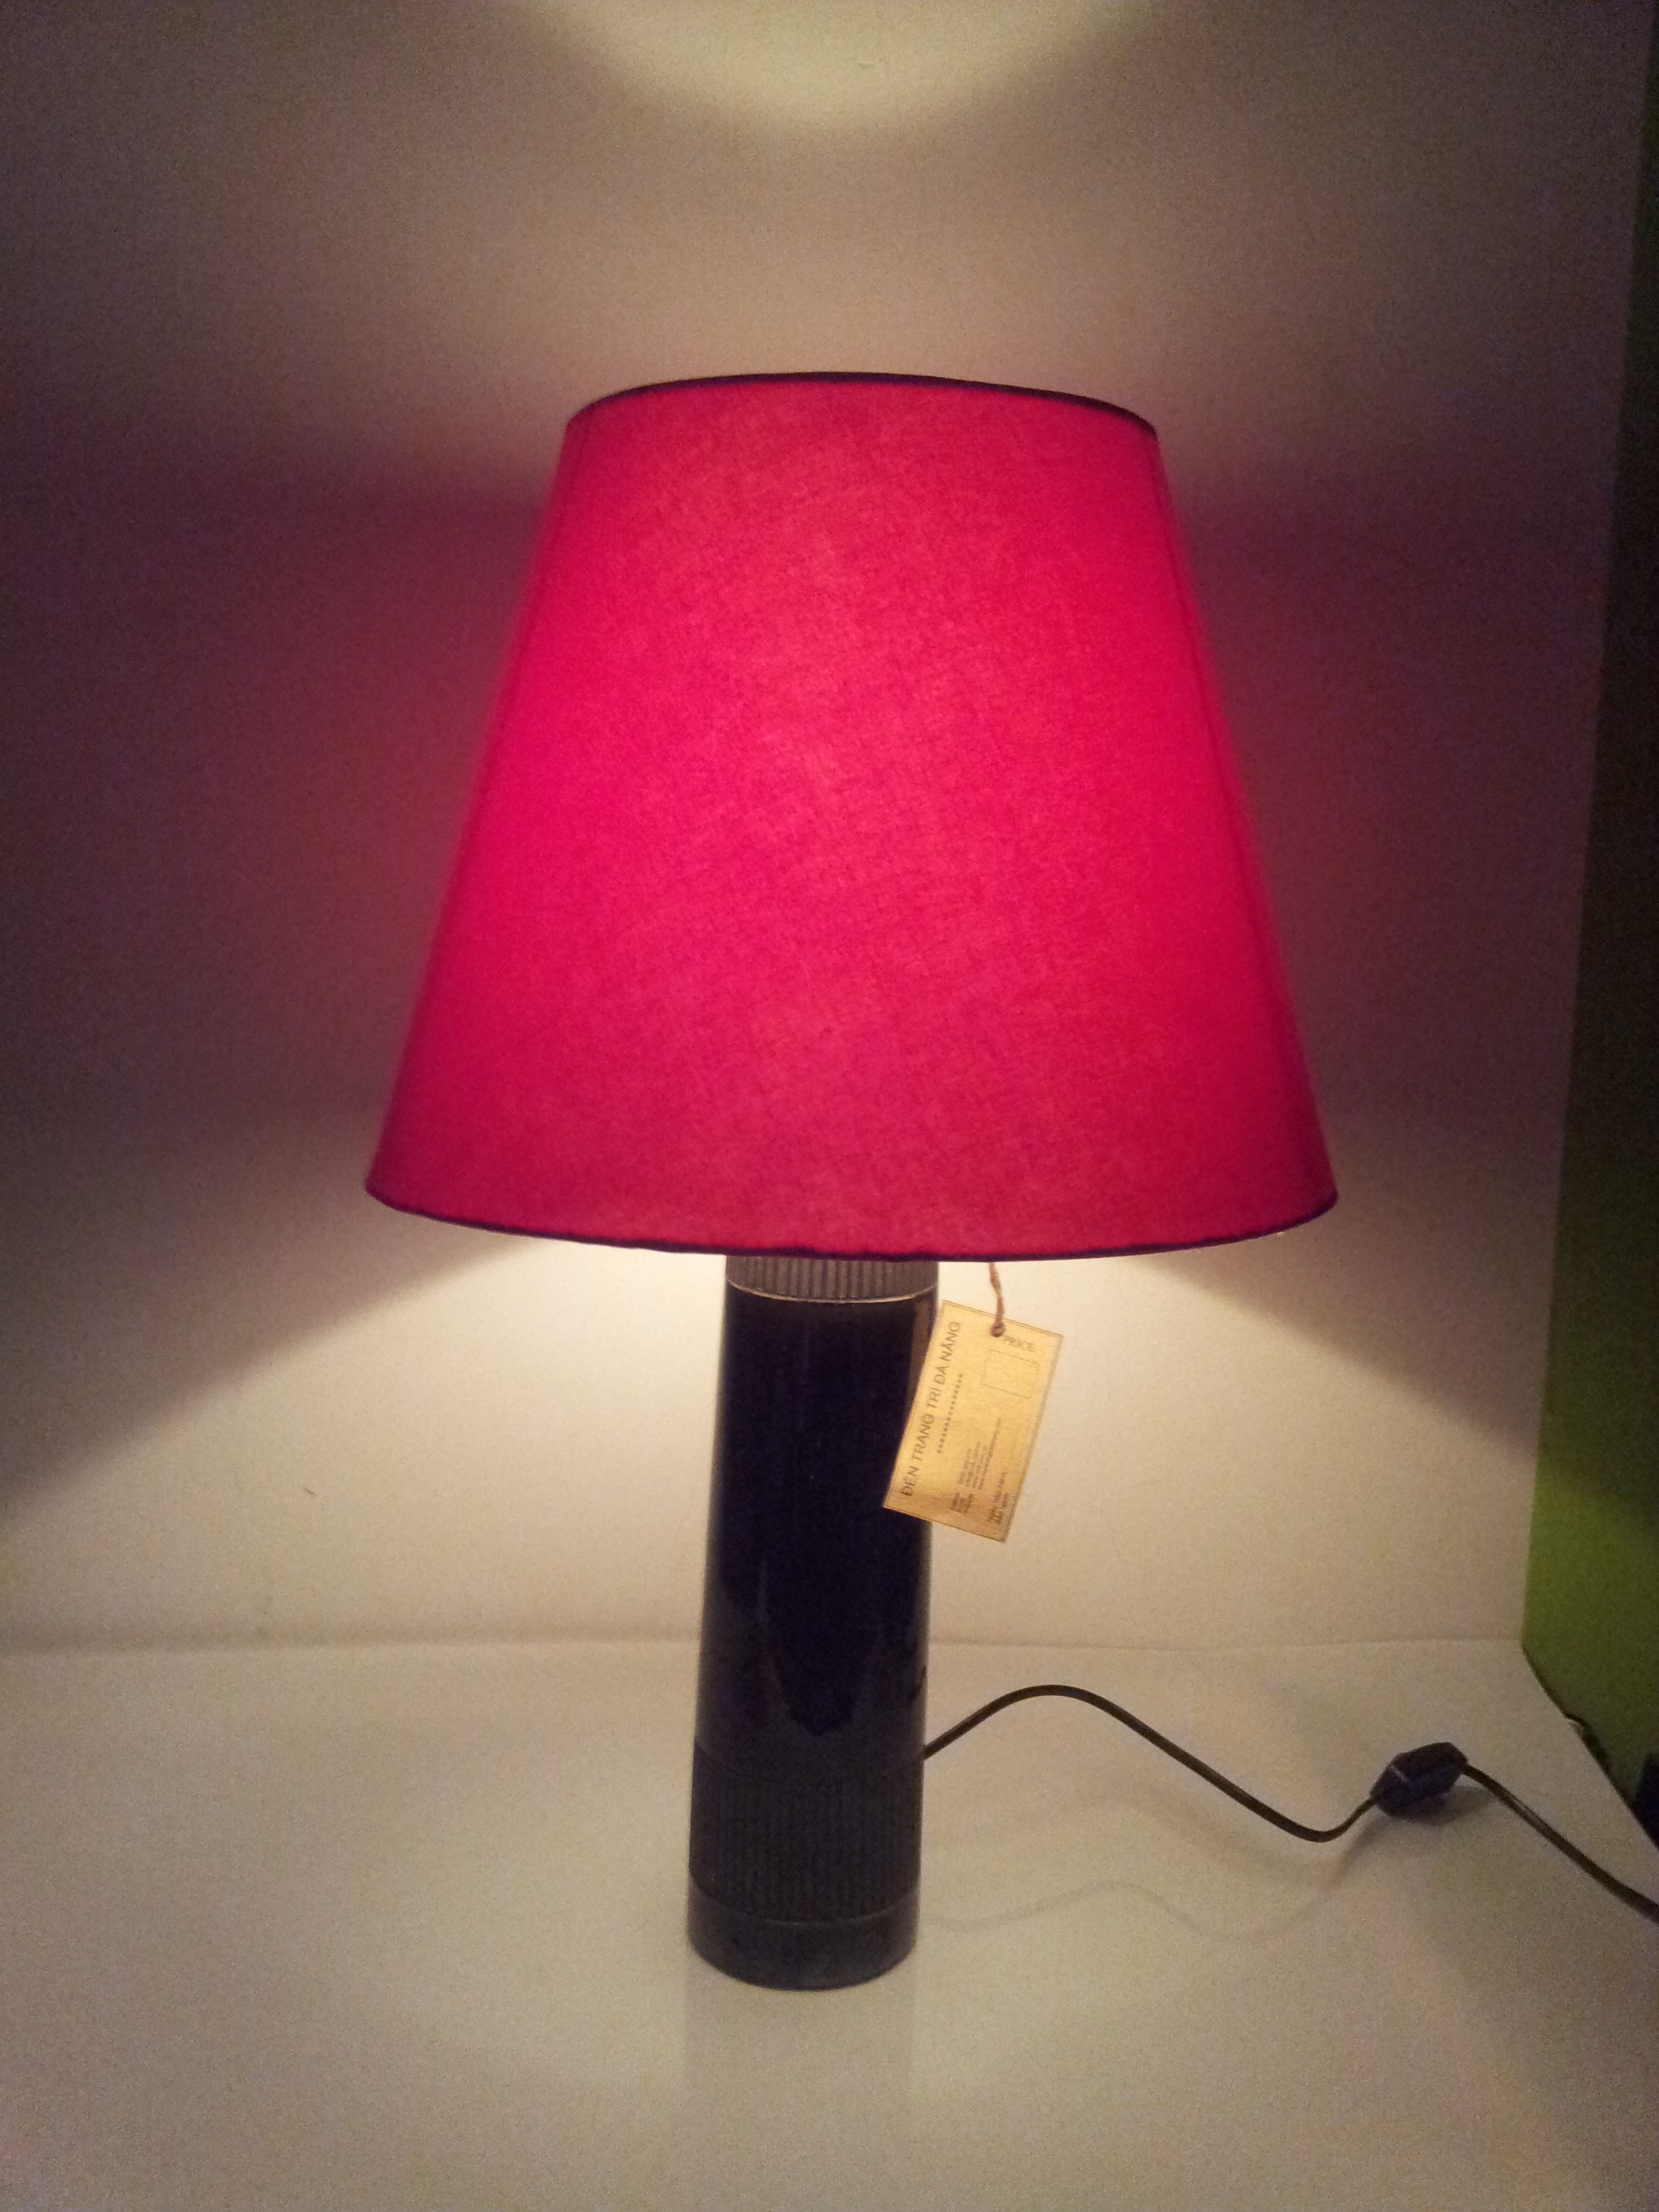 bedroom lamp with red lampshare